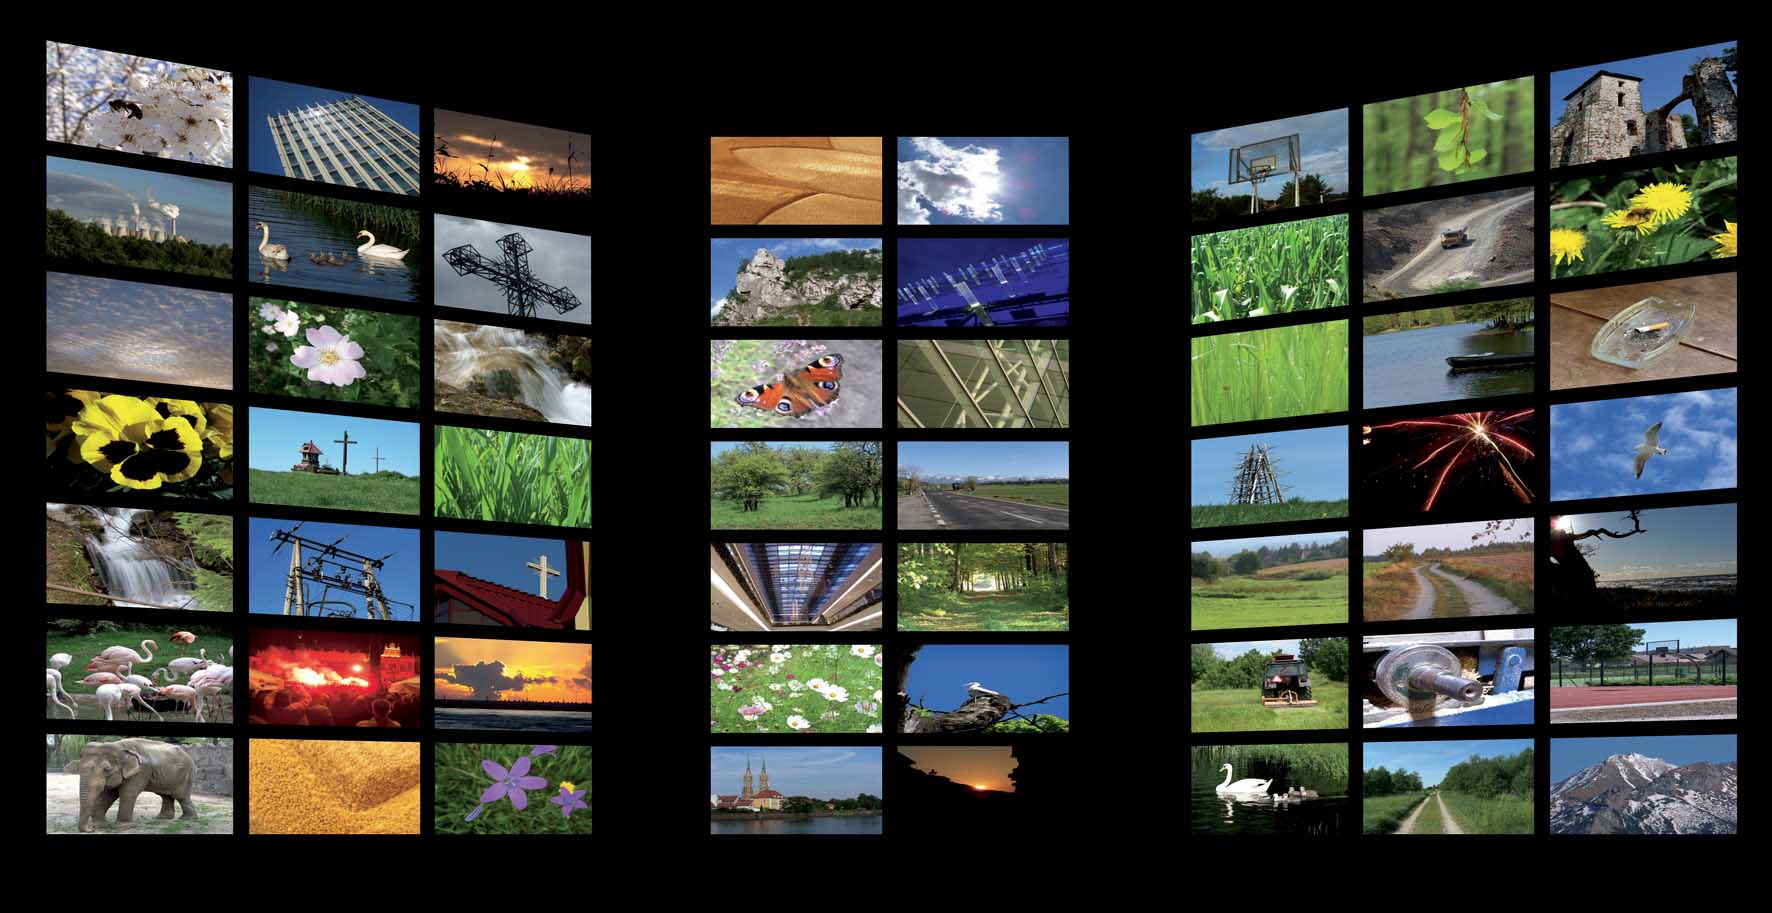 televisione-videowall-FbySh-ilnordest